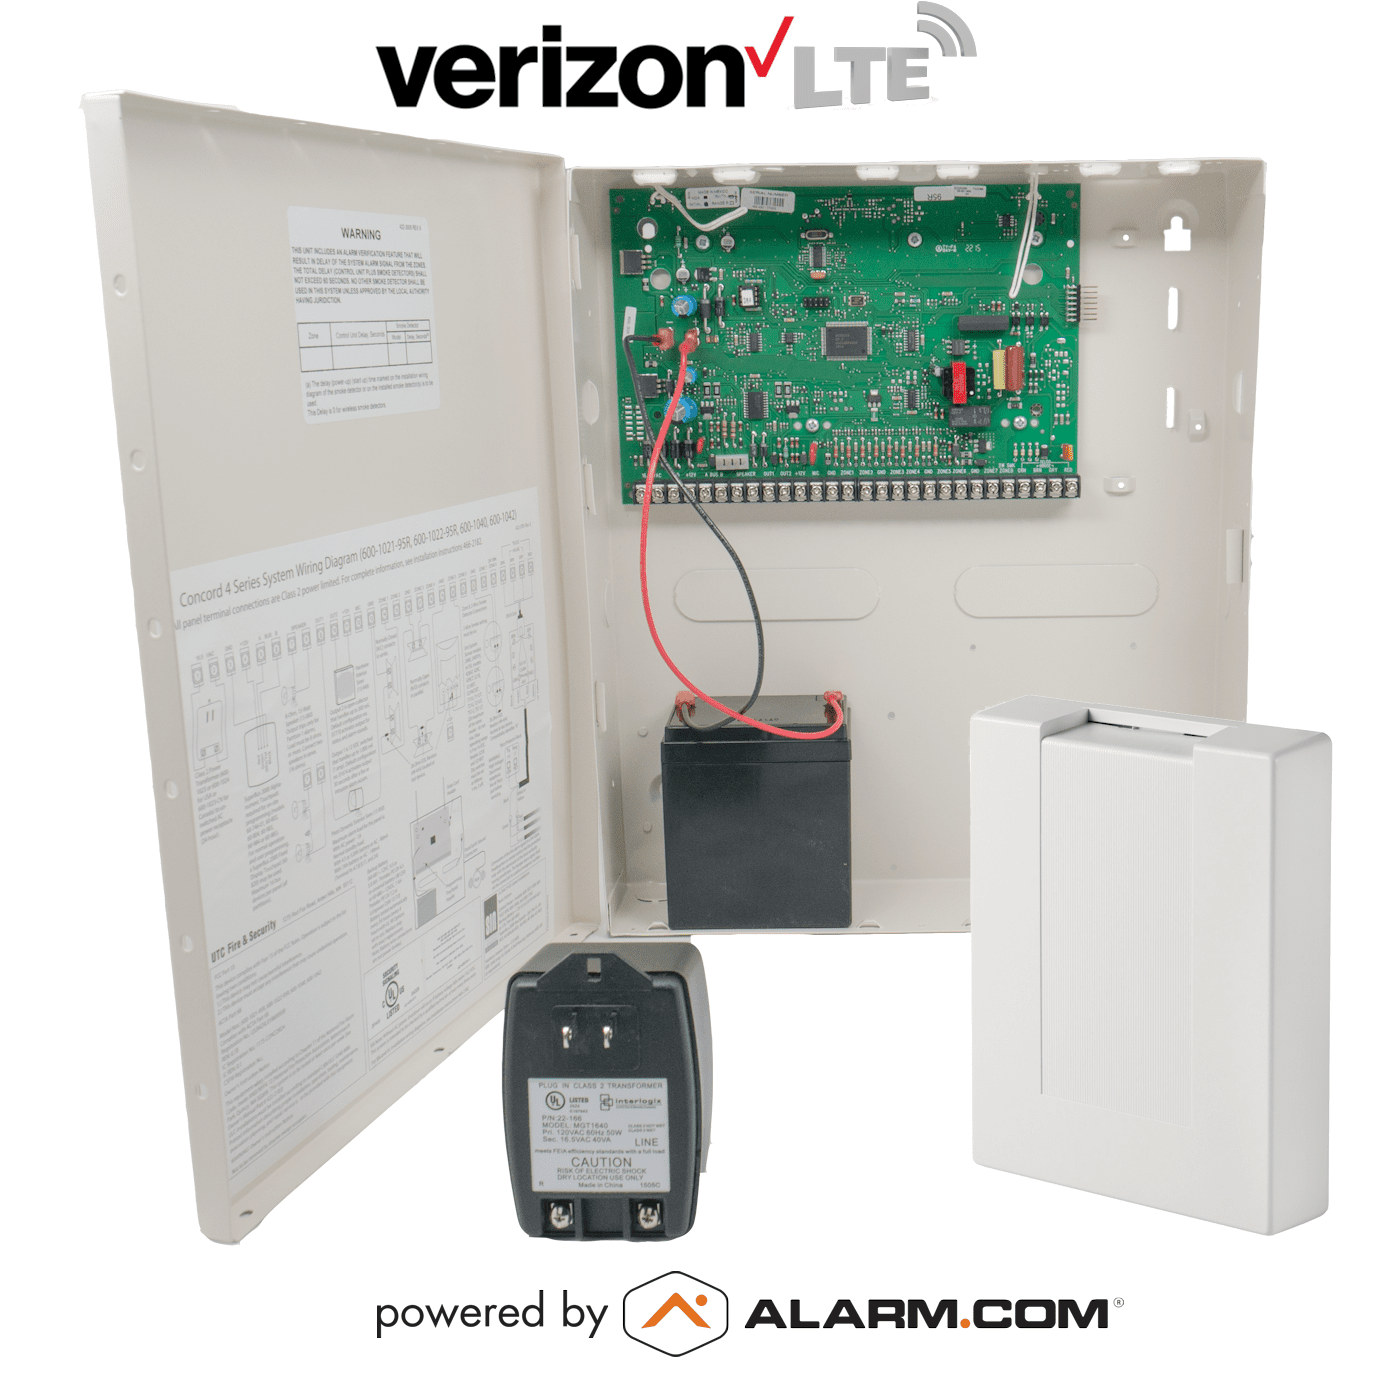 Alarm Transformer Wiring Diagram Schematics Karr Interlogix Concord 4 Cellular Hybrid Security System For Verizon Lte Cobra Car